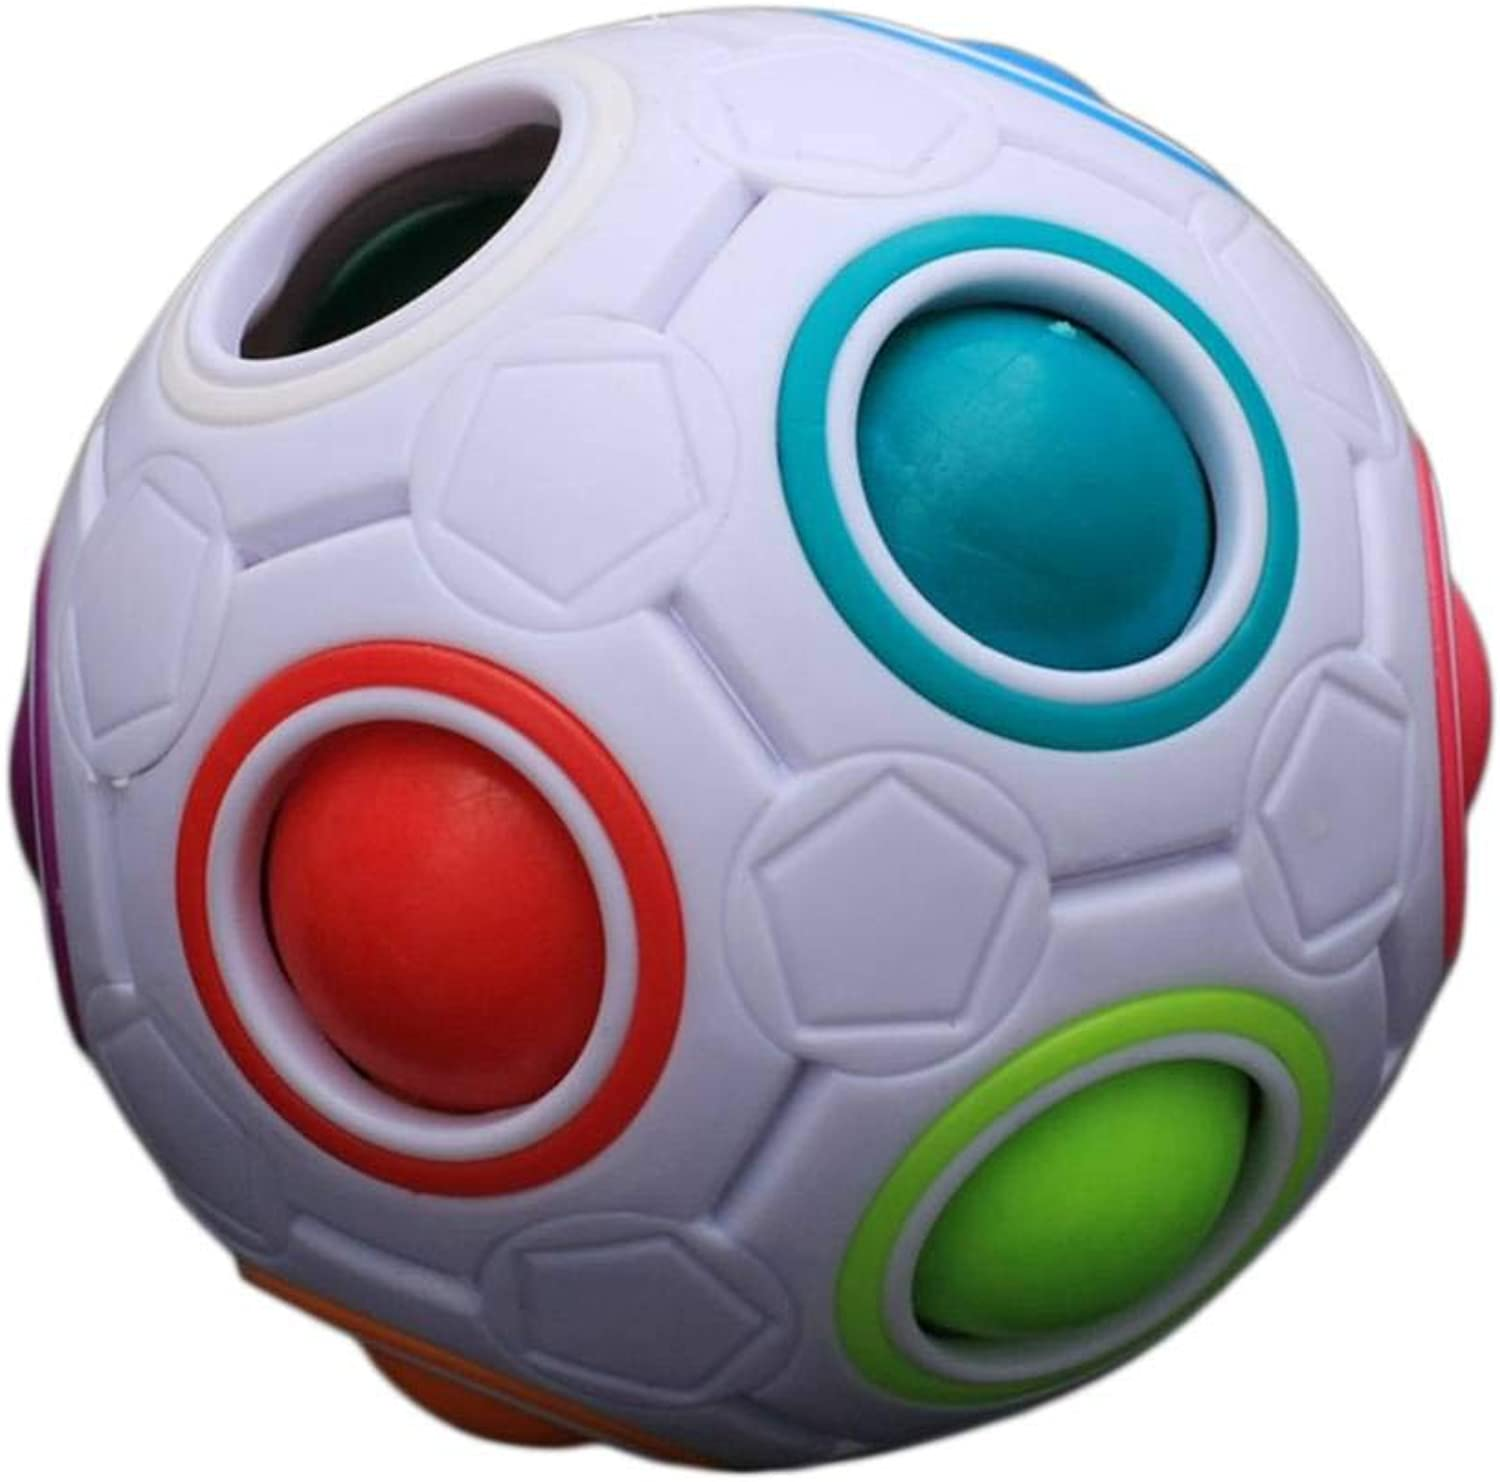 Unique Kid Spherical Rainbow Ball Football Magic Toy colorful Block Toy